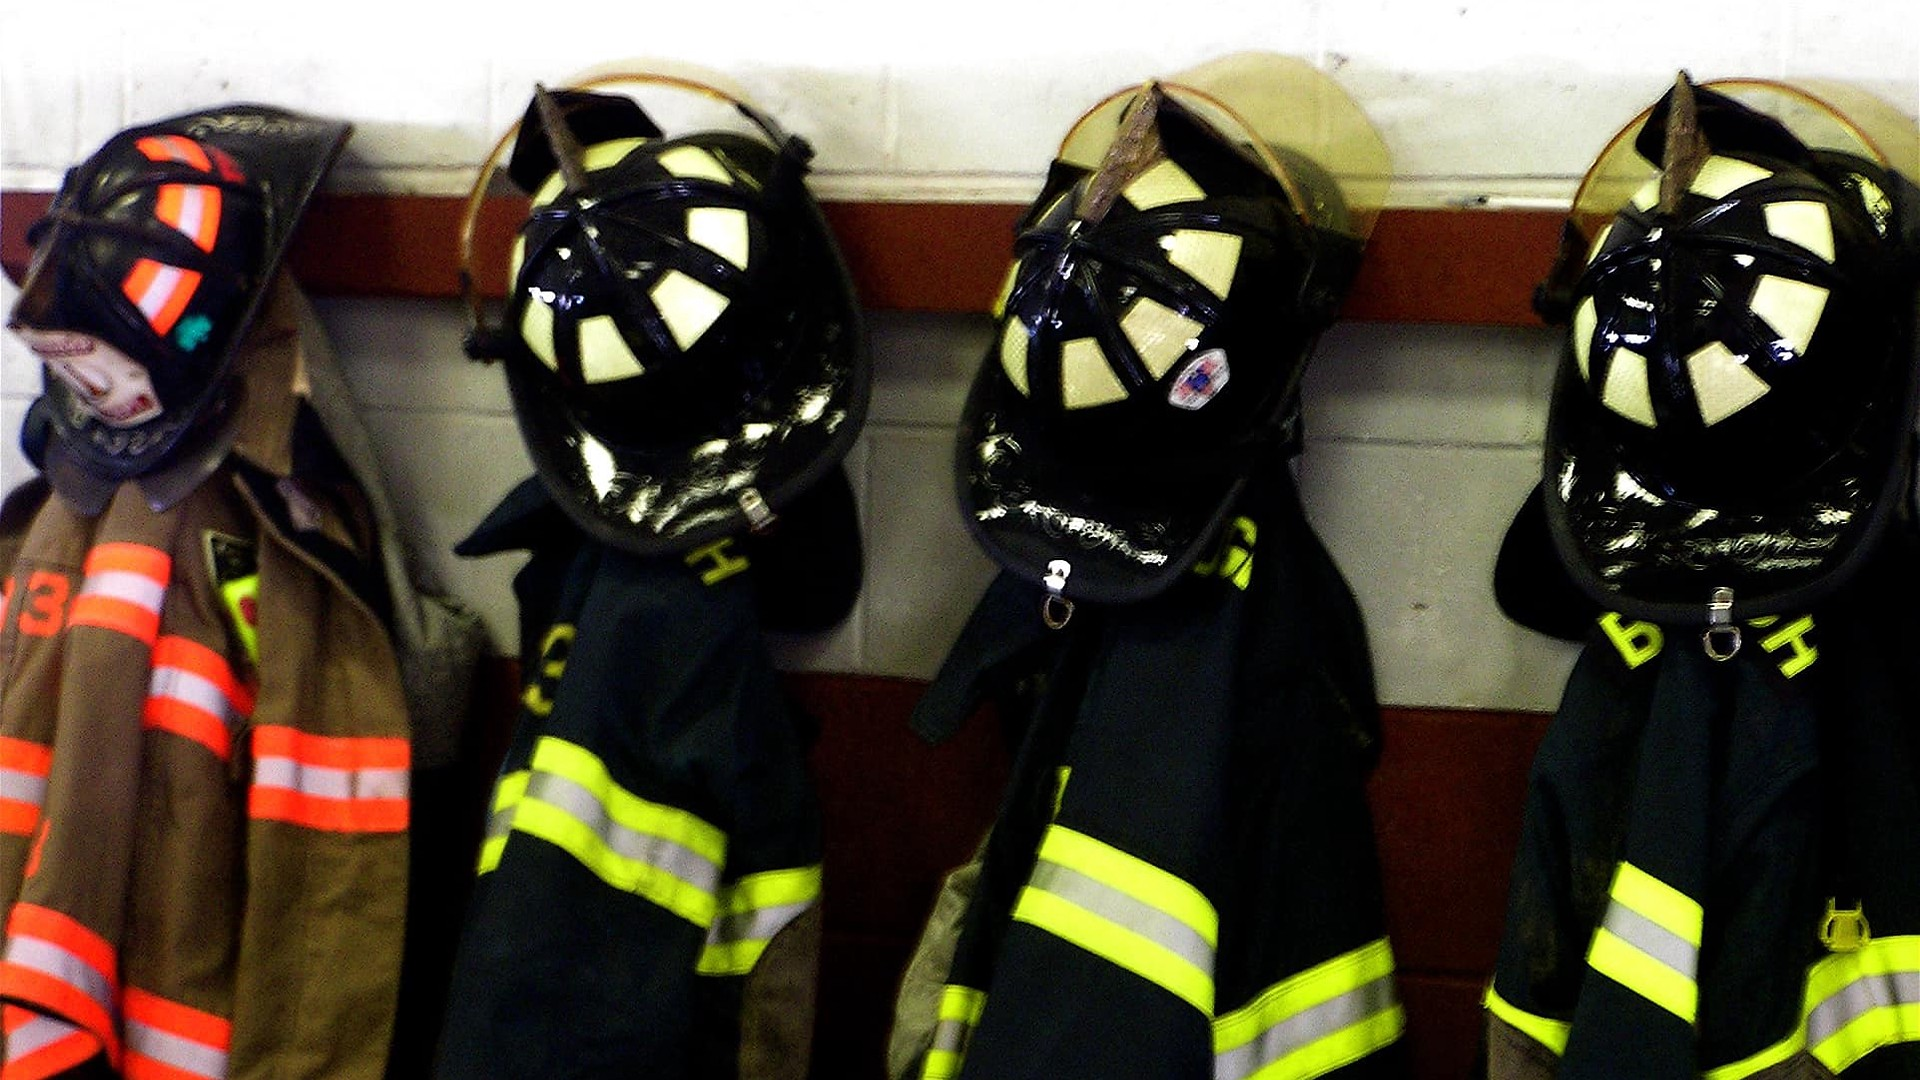 Amsterdam Fire Brigade and story of harassment by firefighters